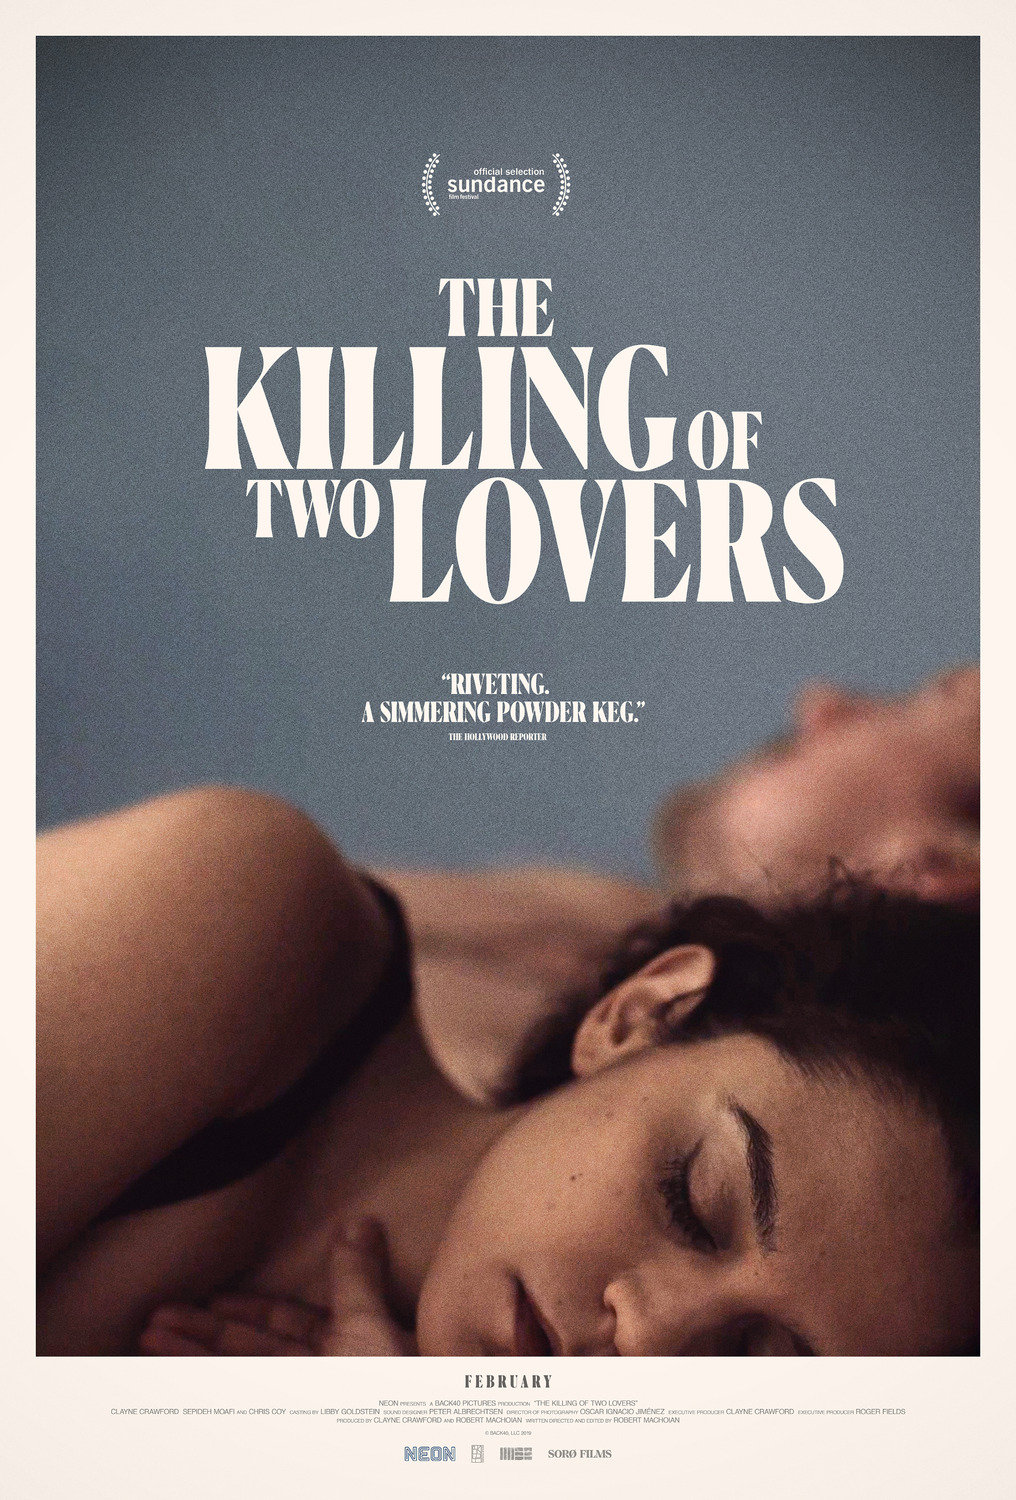 The Killing of Two Lovers poster image